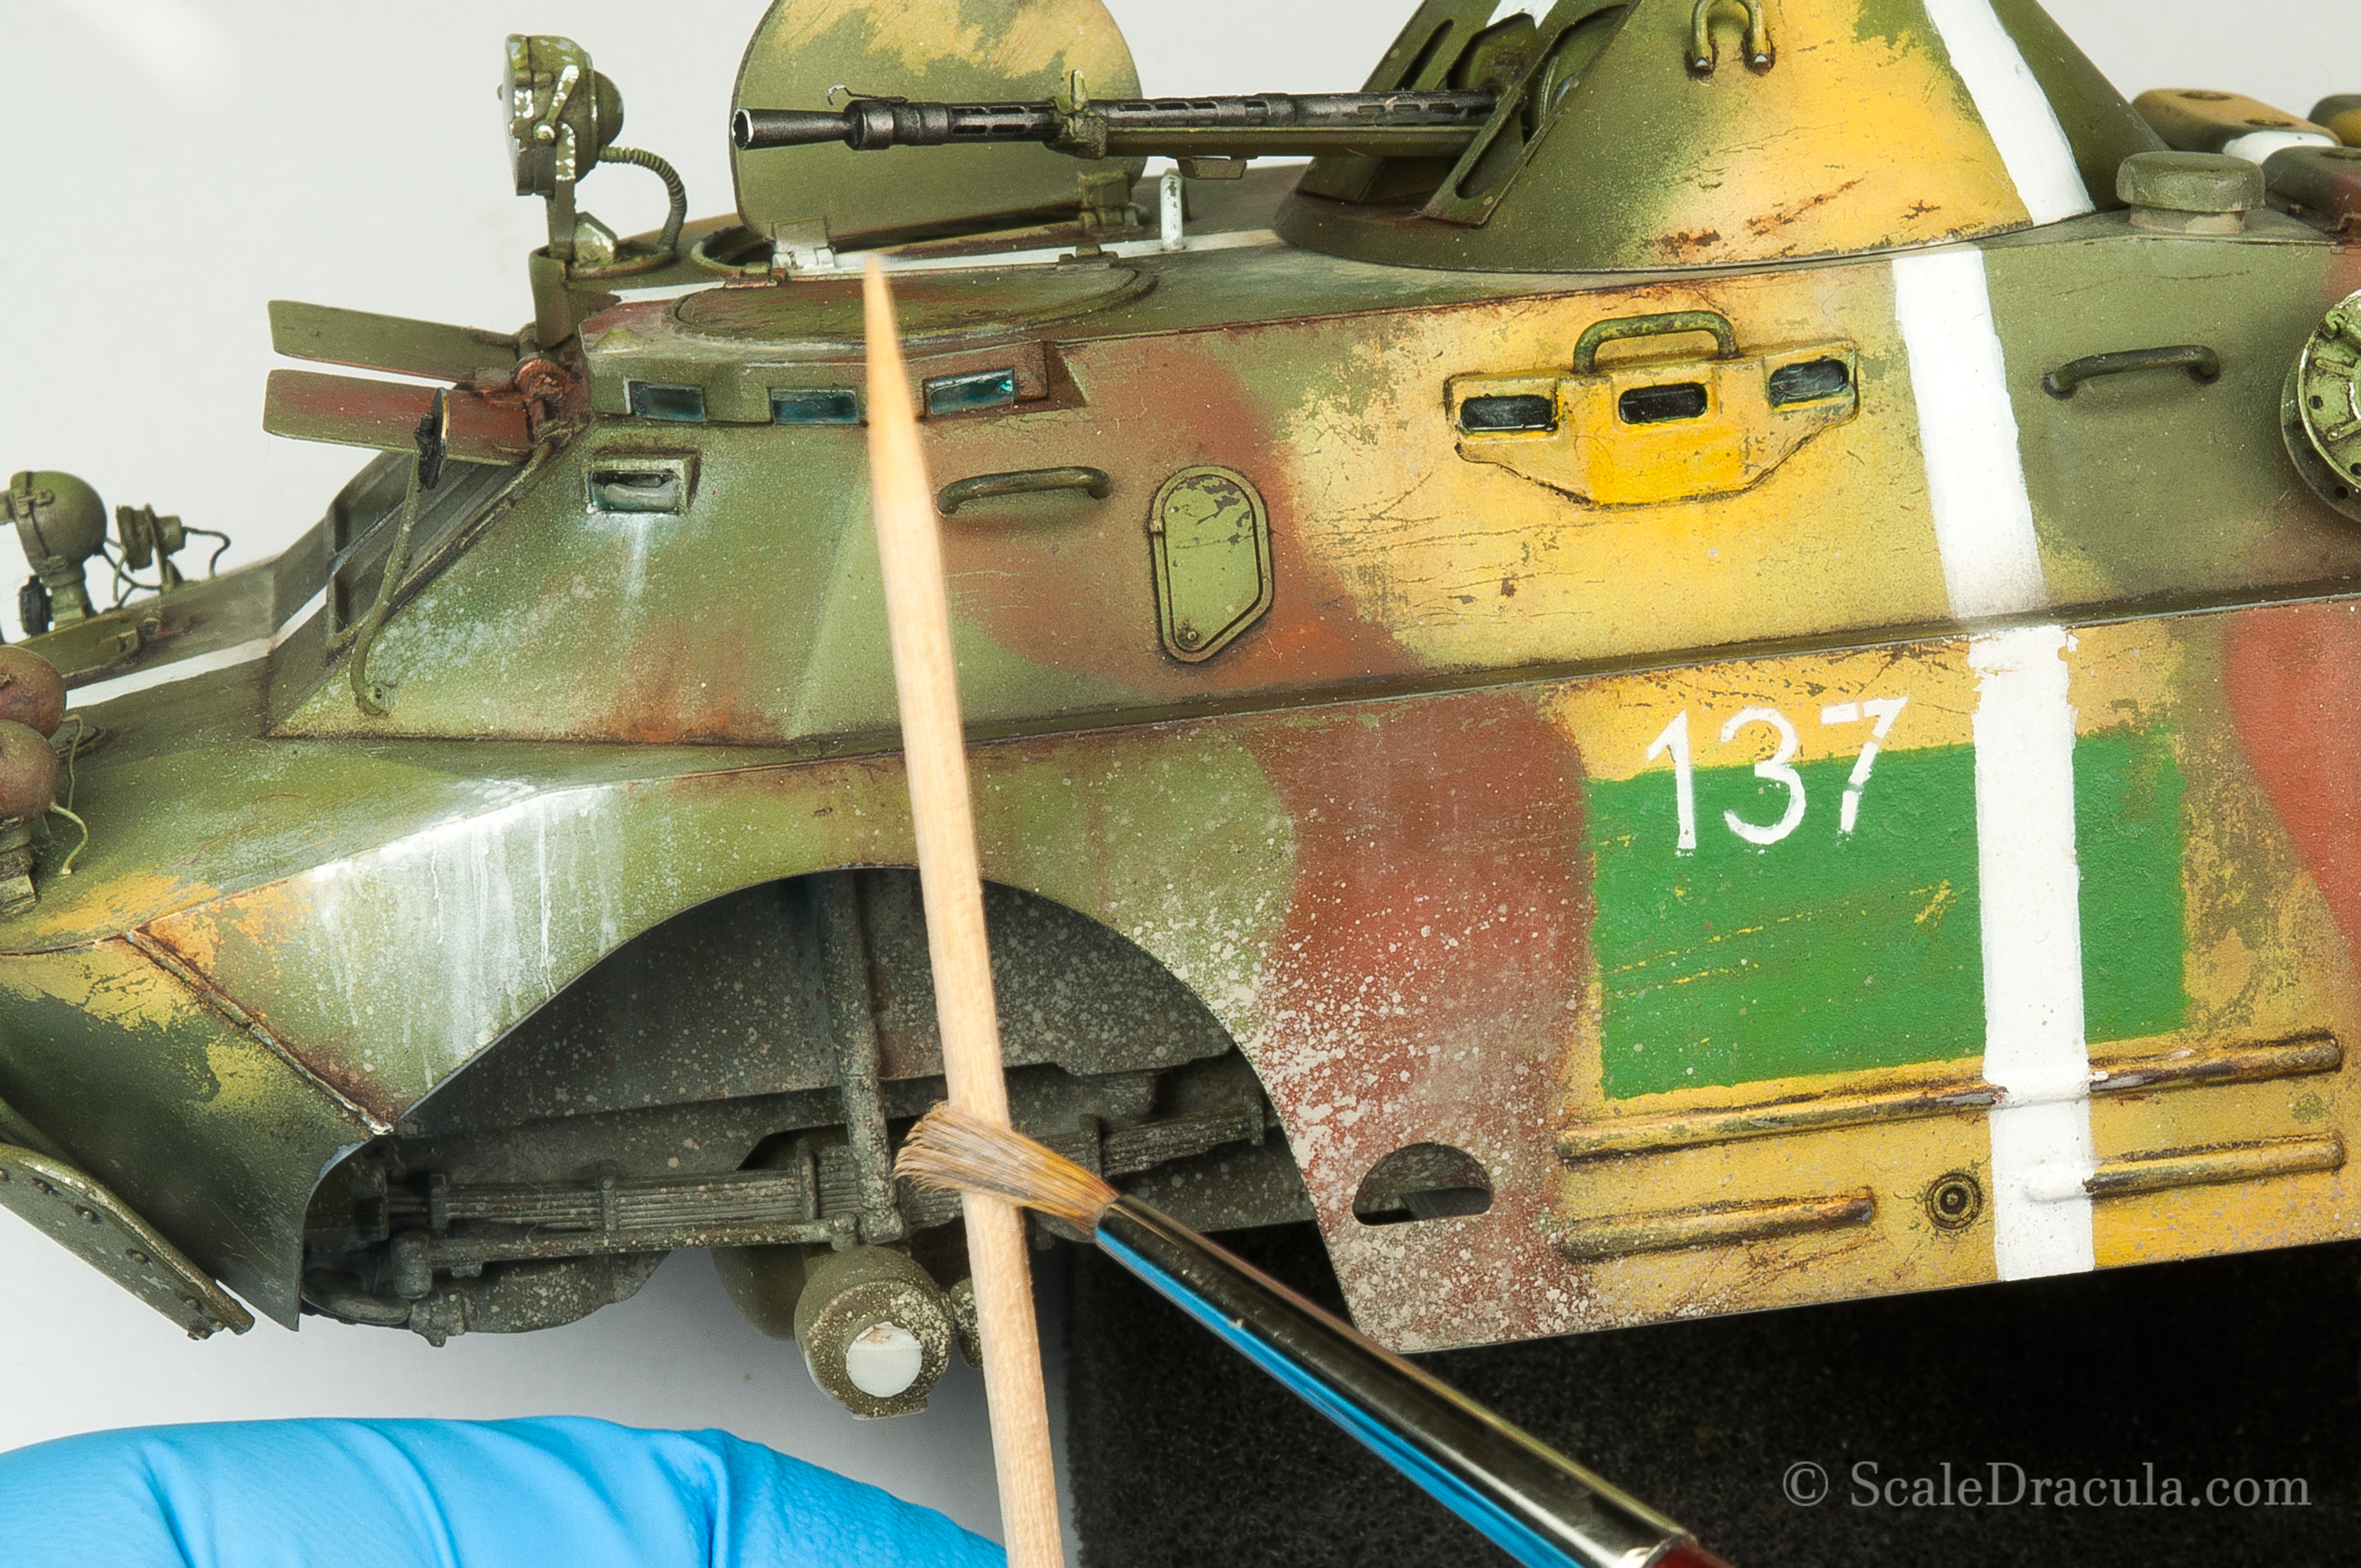 Mud splashes done with oil paints, BRDM-2 by Trumpeter